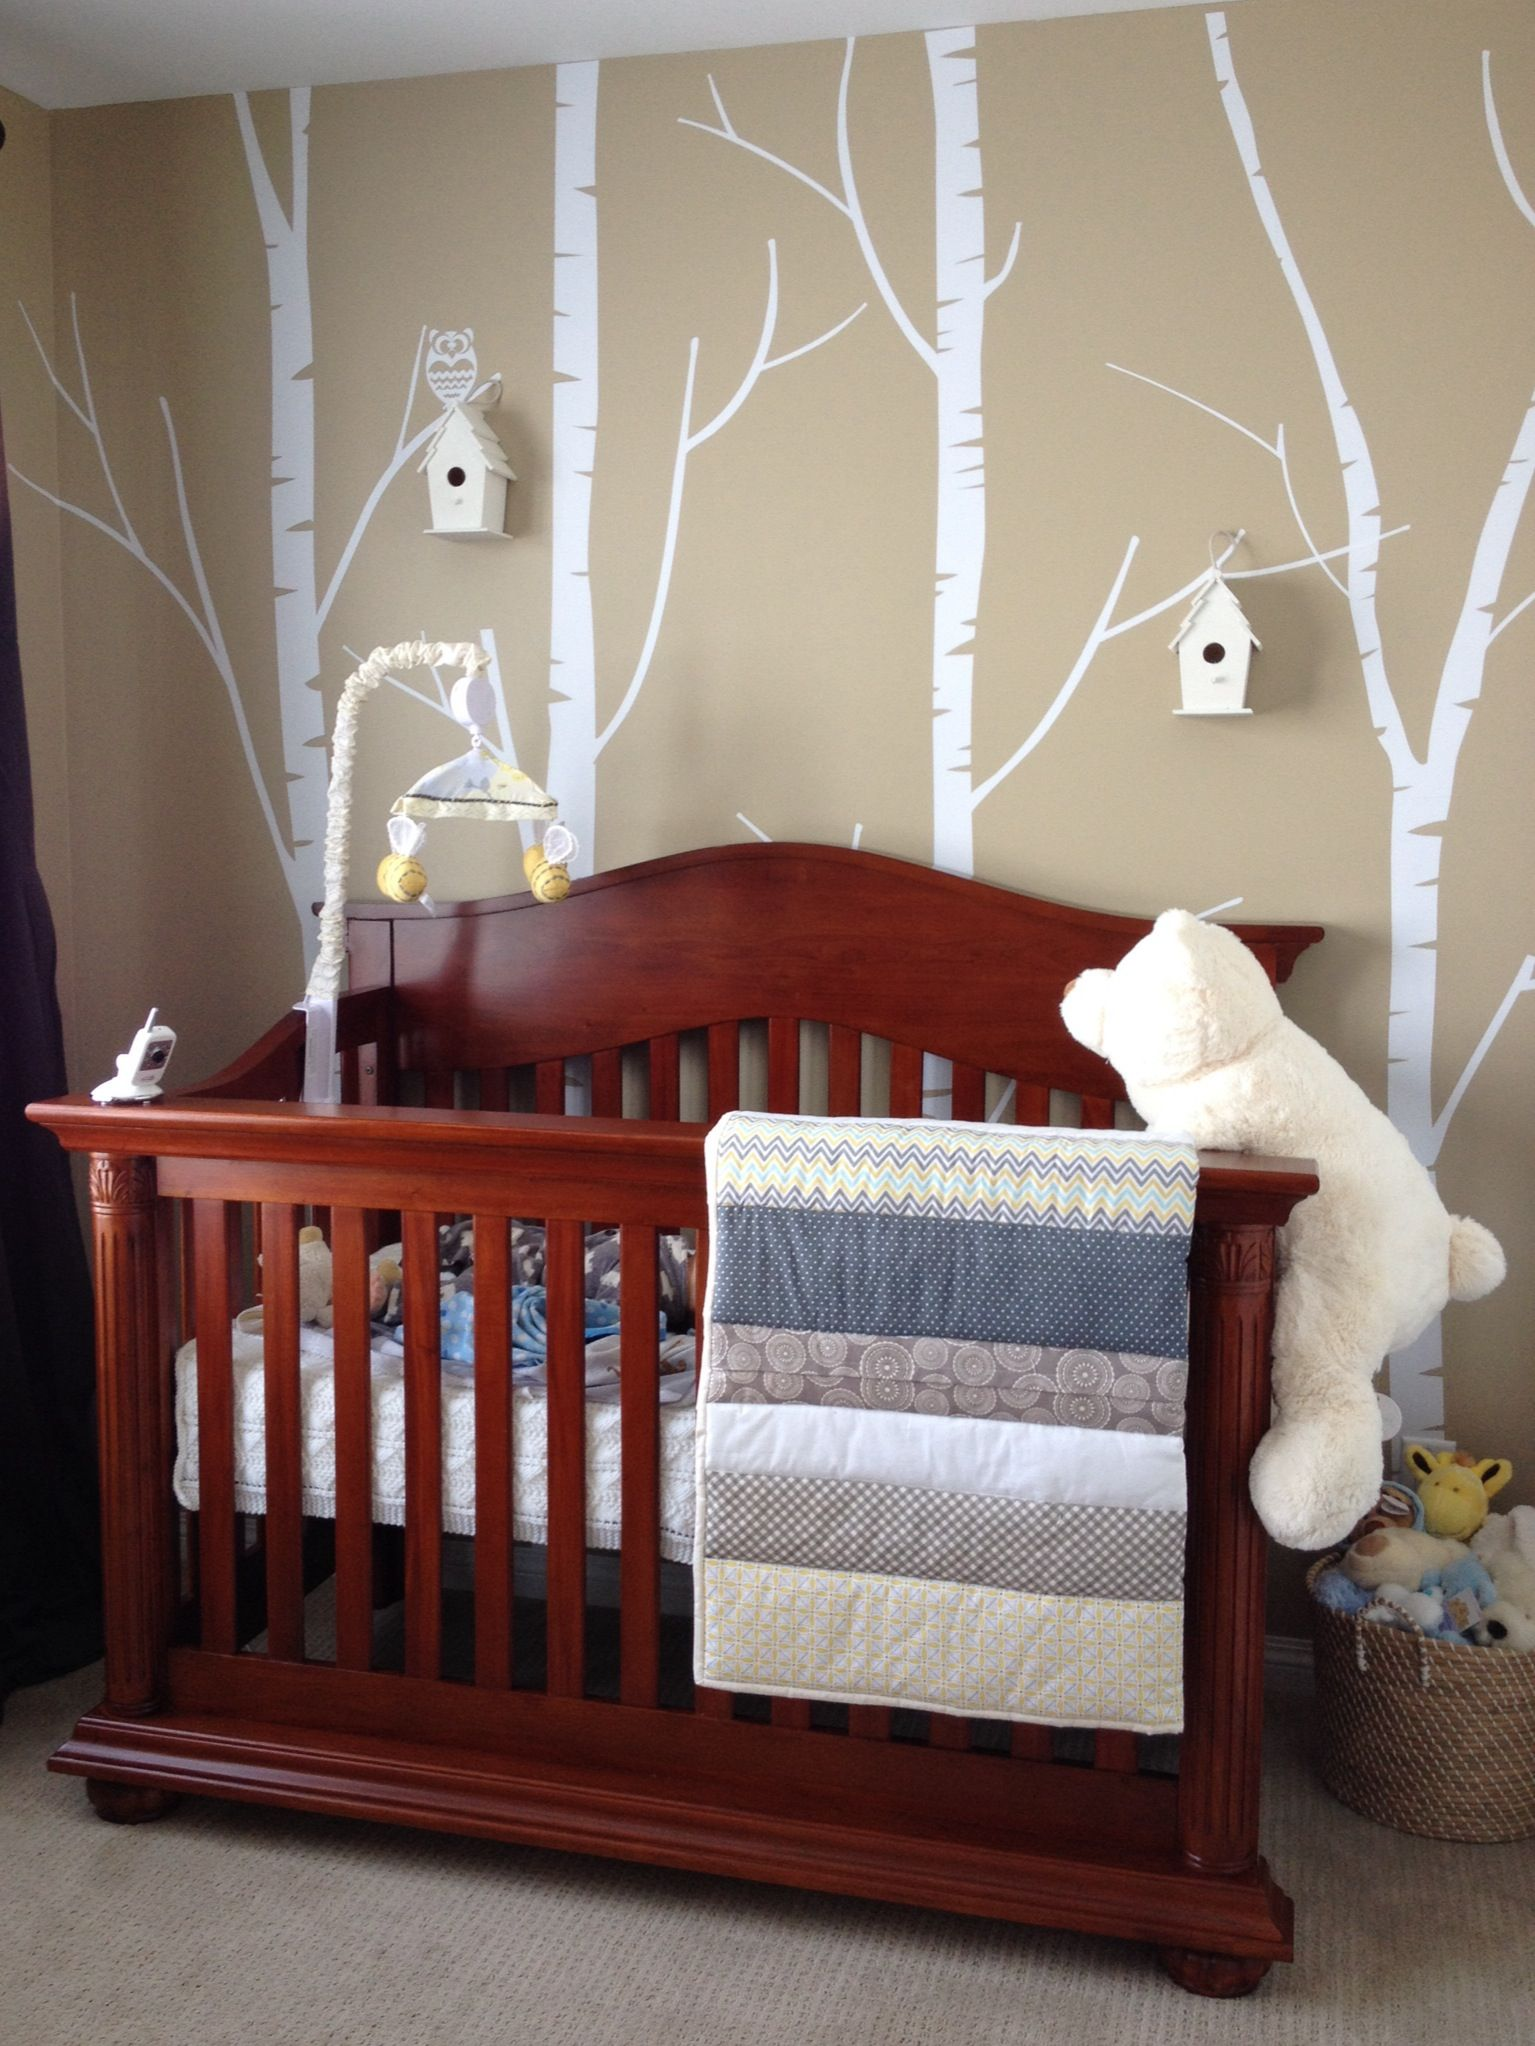 Birch tree wall decal from Etsy. Outdoor themed baby room ...